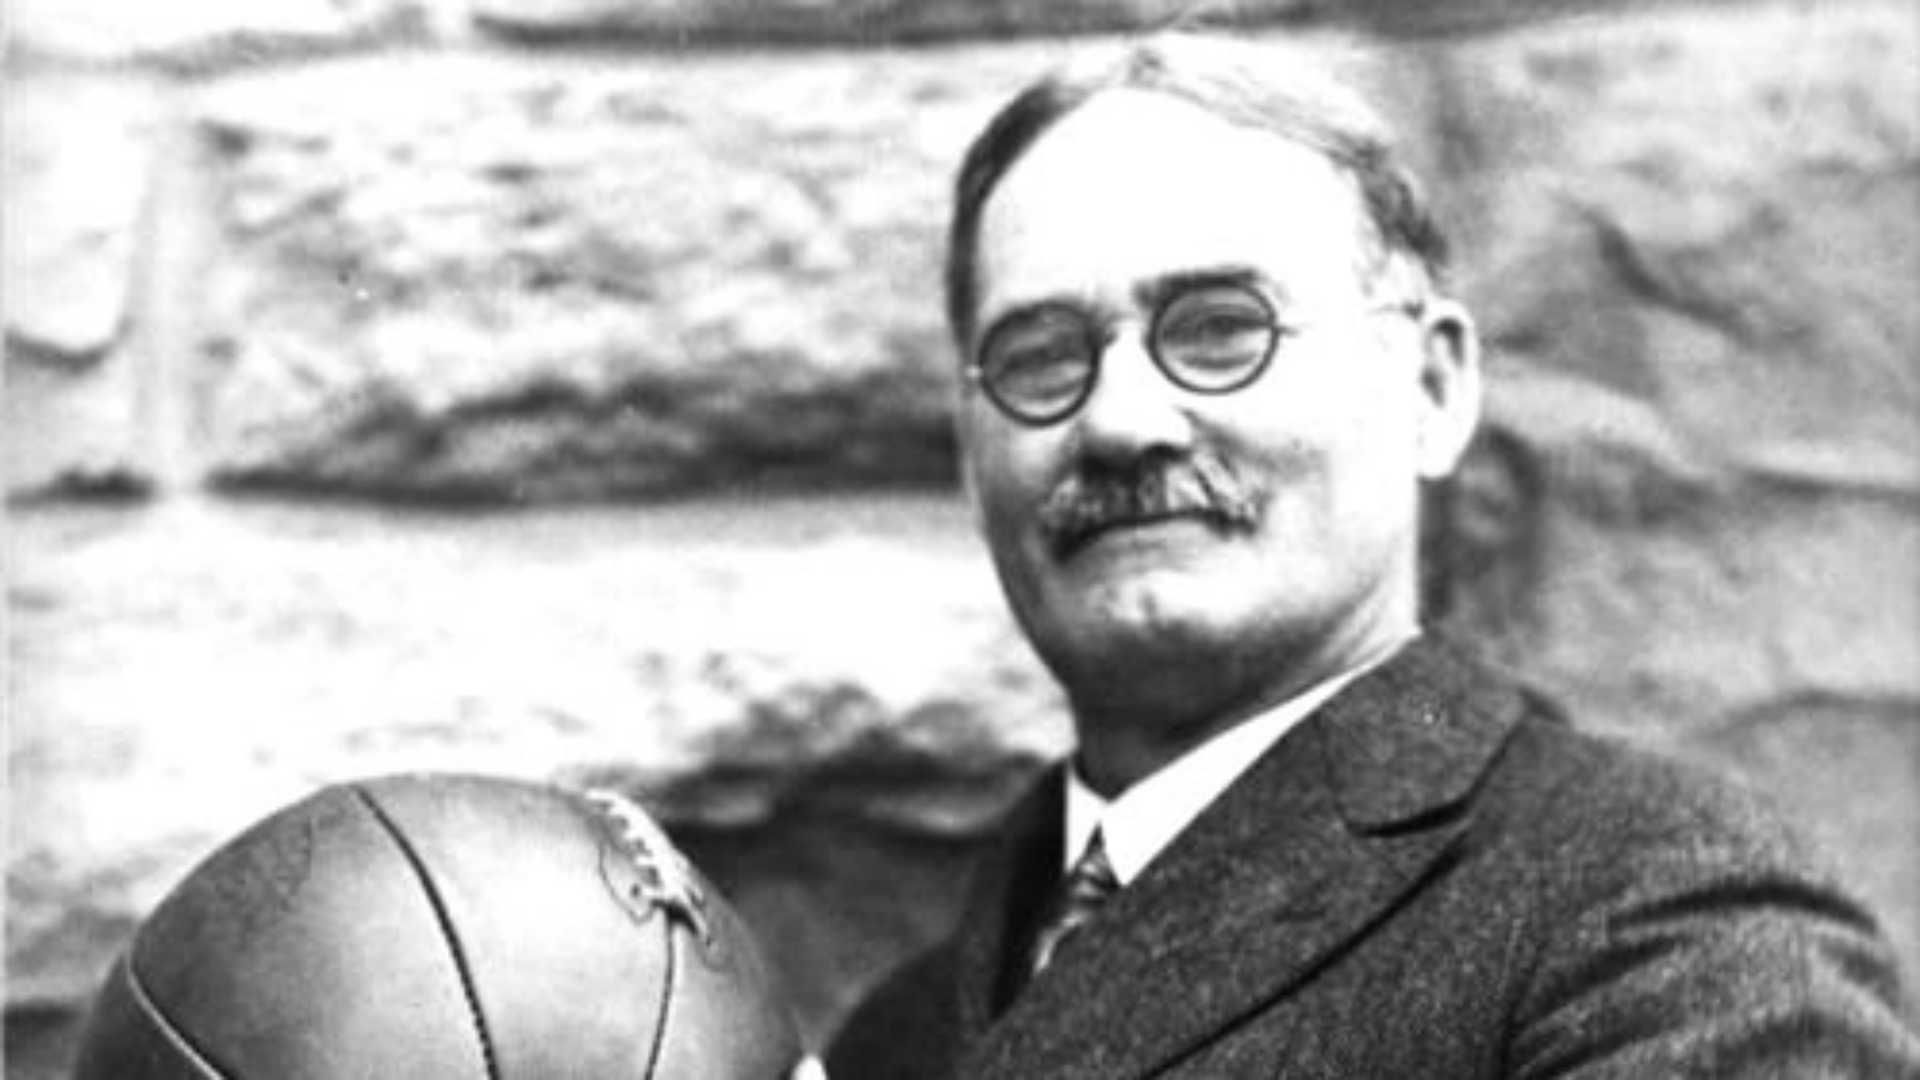 life of dr james naismith and his contribution to basketball Dr james naismith invented basketball dr james naismith invented the game of basketball as a way for football players he trained at springfield college in massachusetts to stay in shape during the winter 154,569 contributions his garden has chickens, guinea pigs.